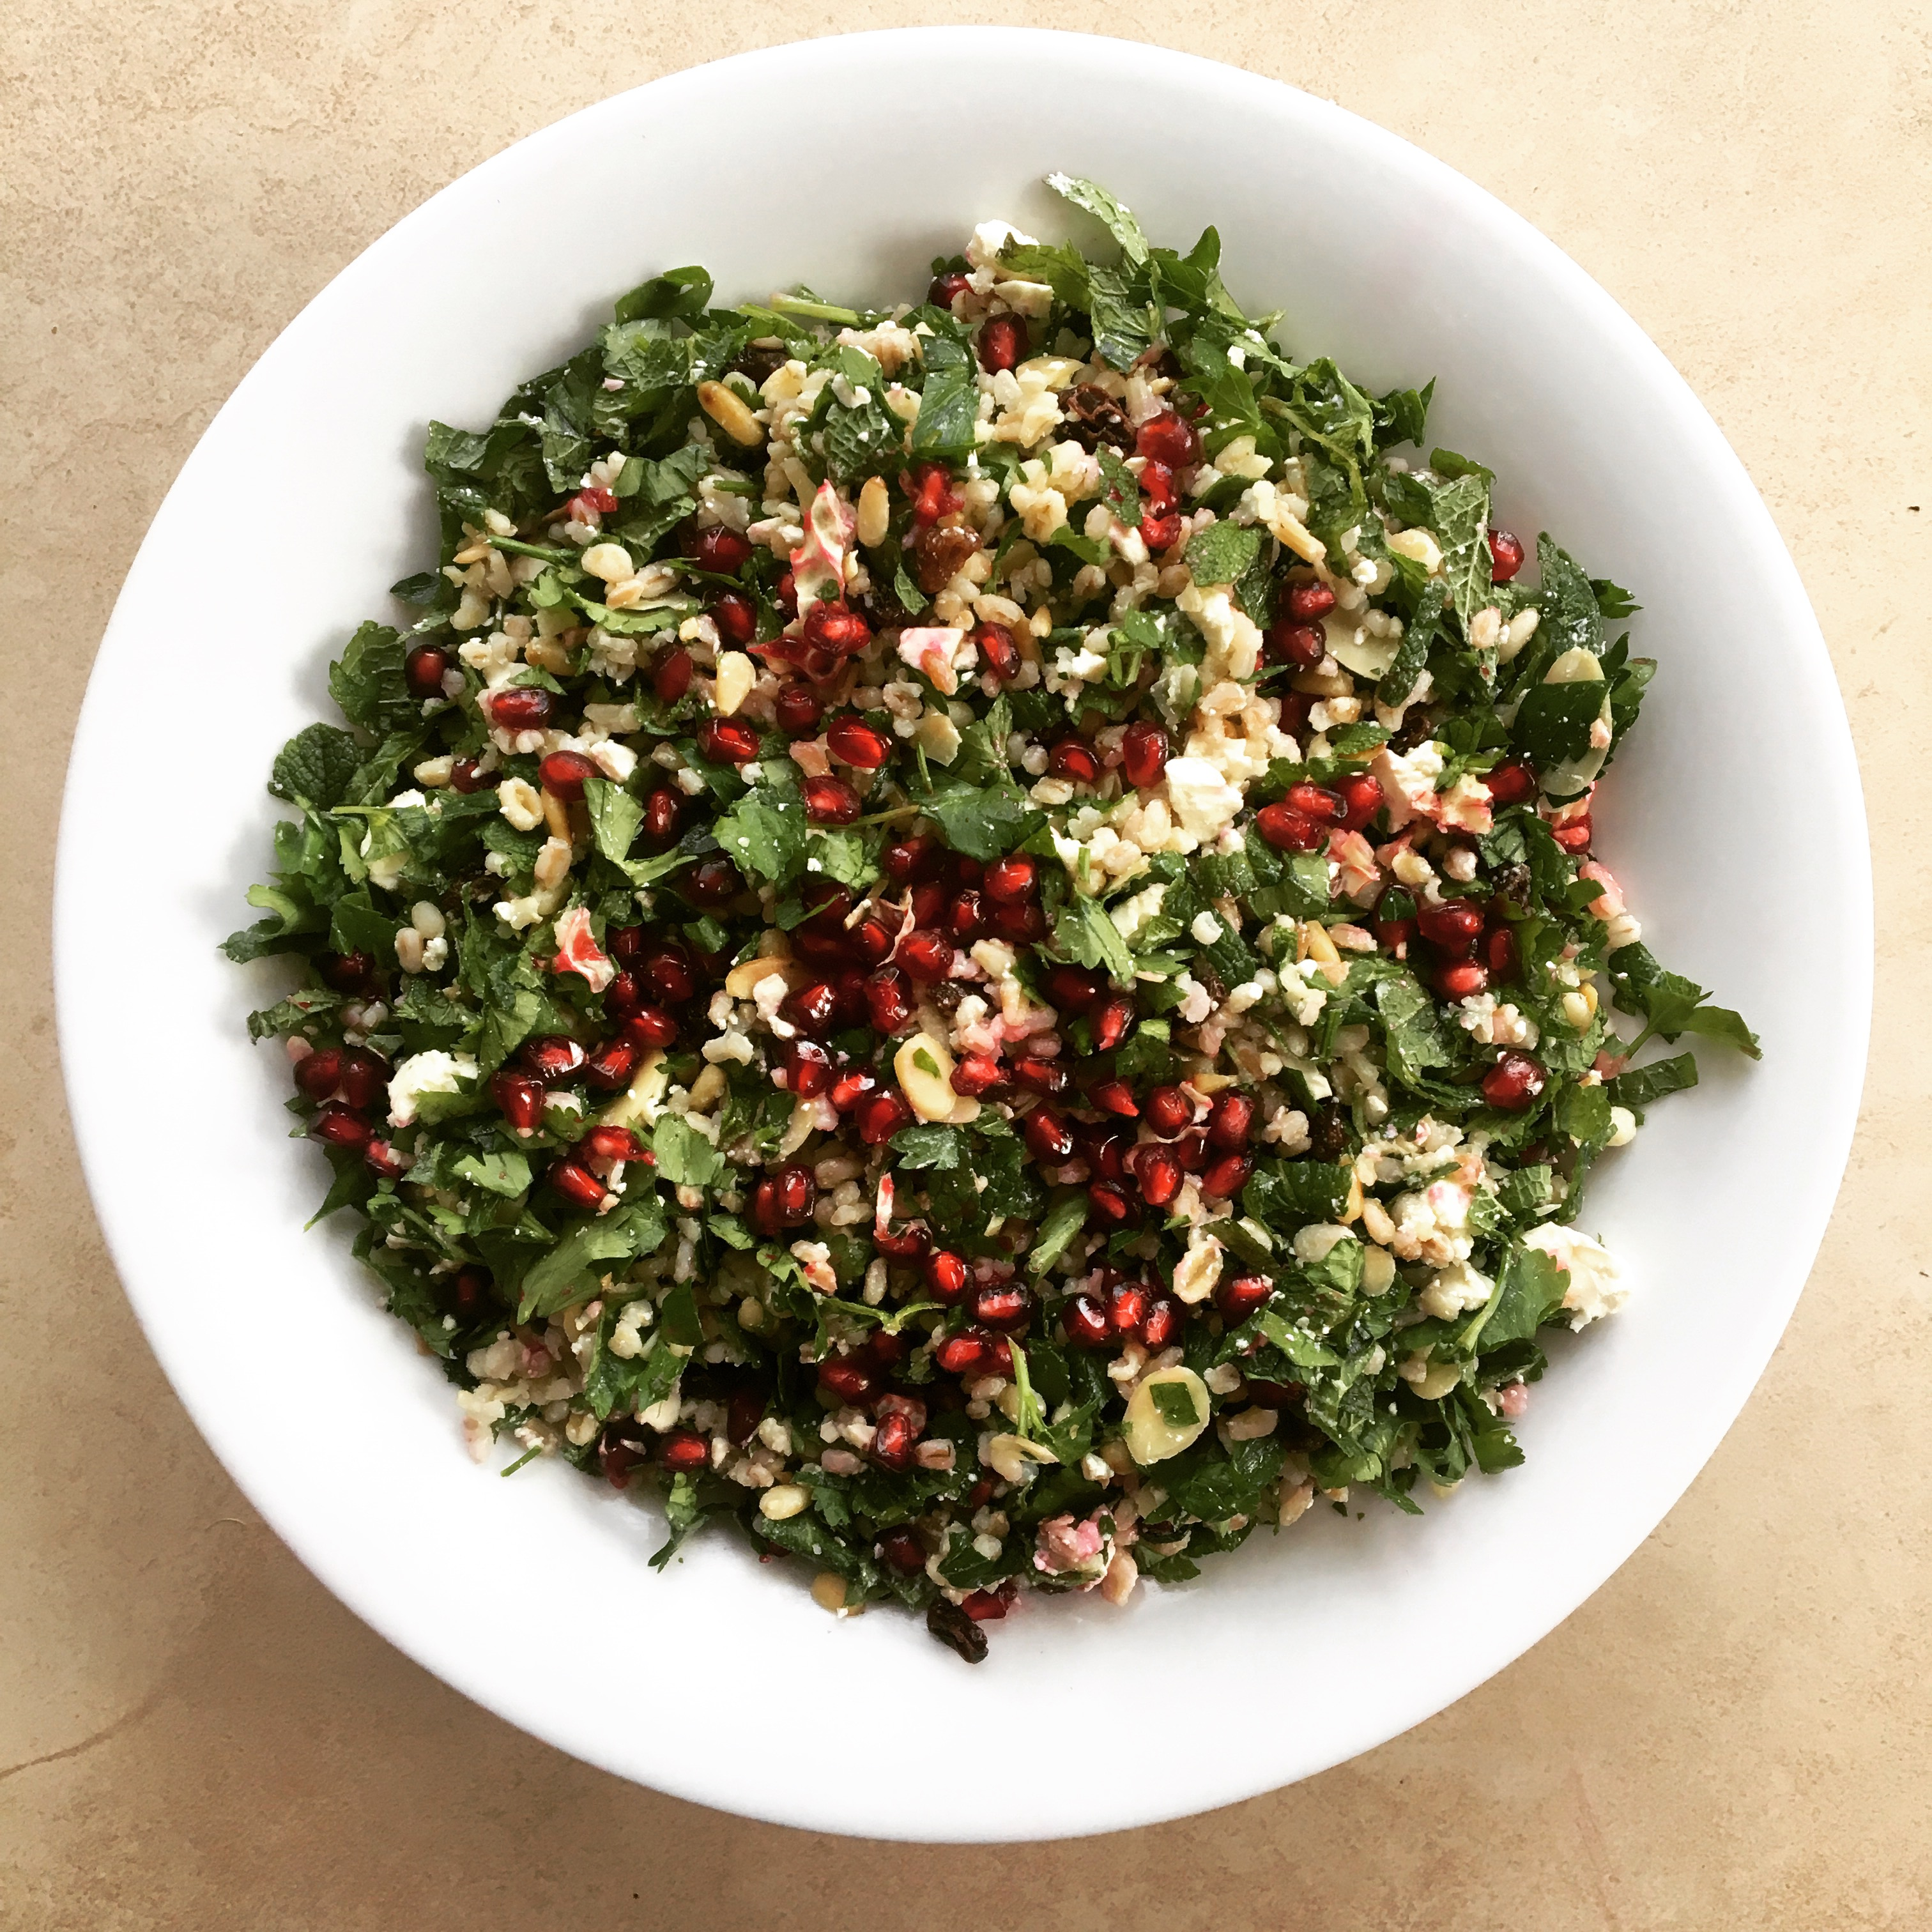 Pomegranate and Herb Salad